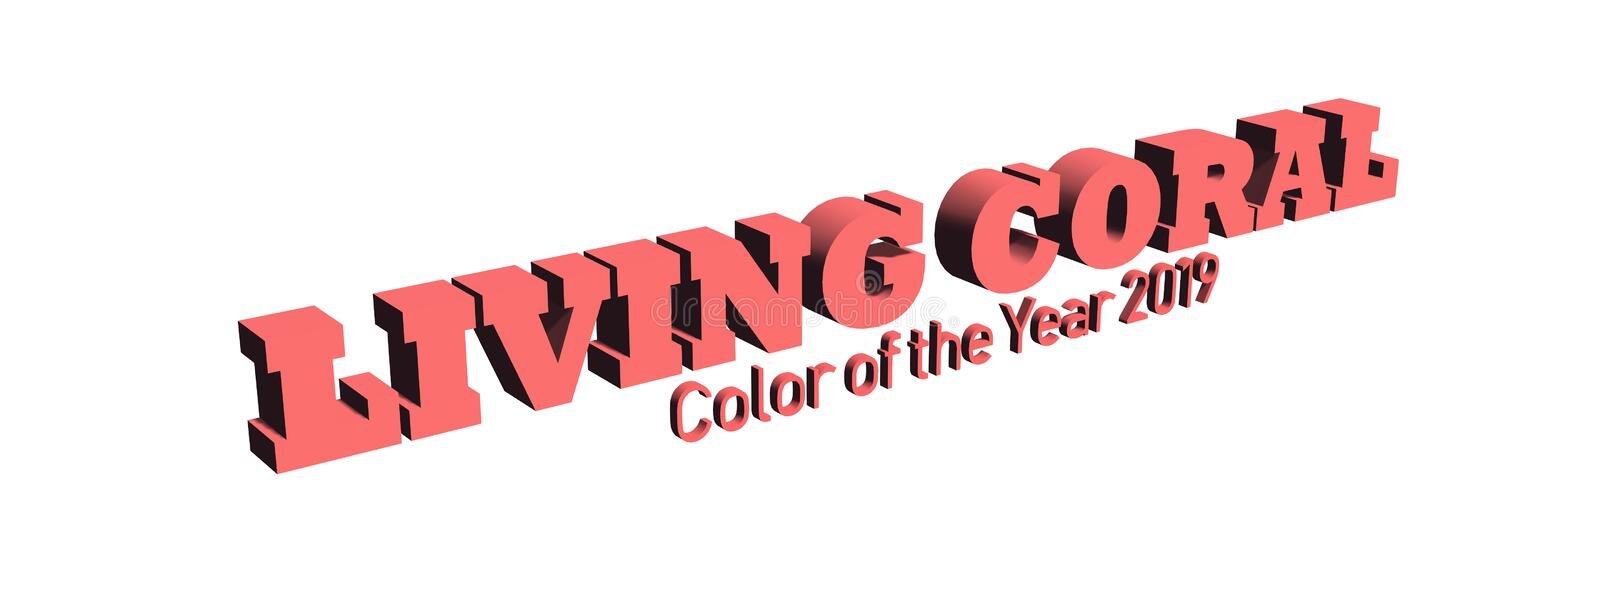 Text - Color of the year 2019, Living Coral - diagonally on white background. Text - Color of the year 2019, Living Coral - isolated diagonally on white royalty free illustration